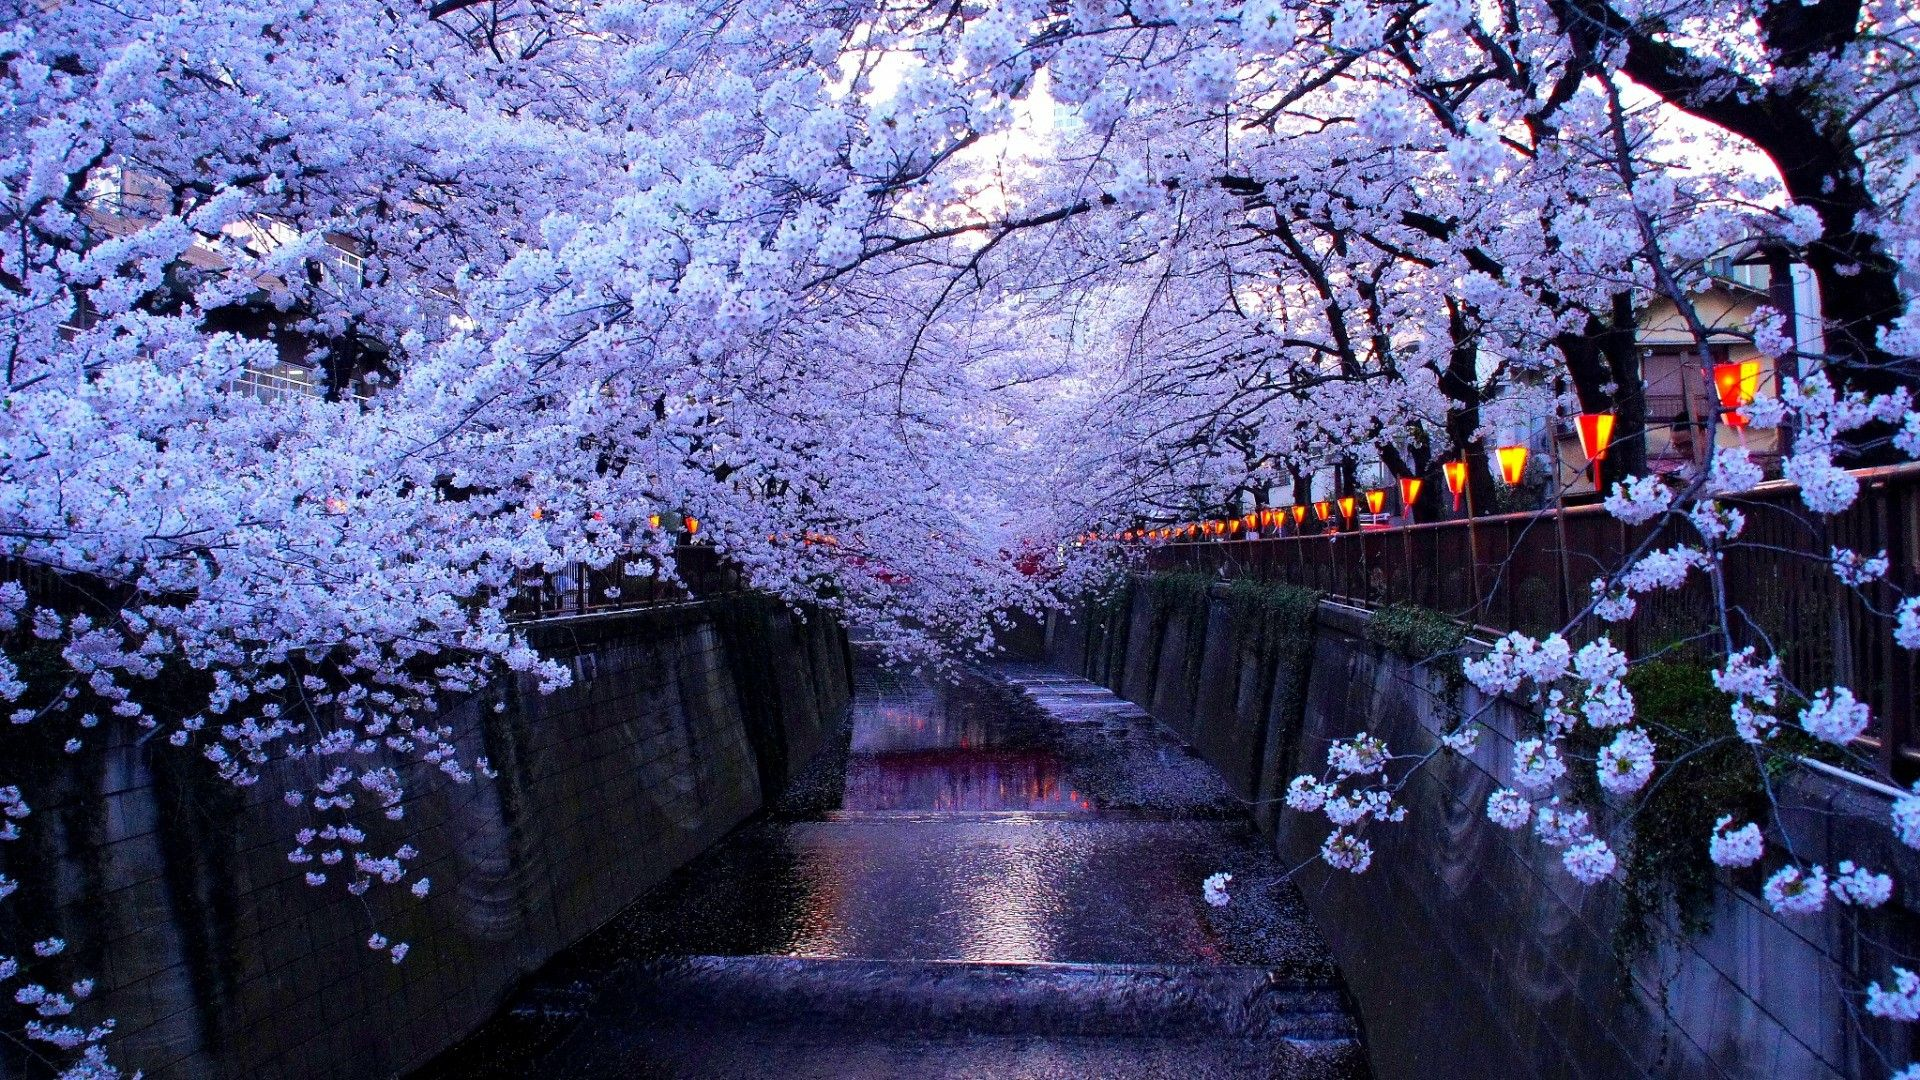 1920x1080 Country - Japan | Wallpaper Studio 10 | Tens of thousands HD and ...